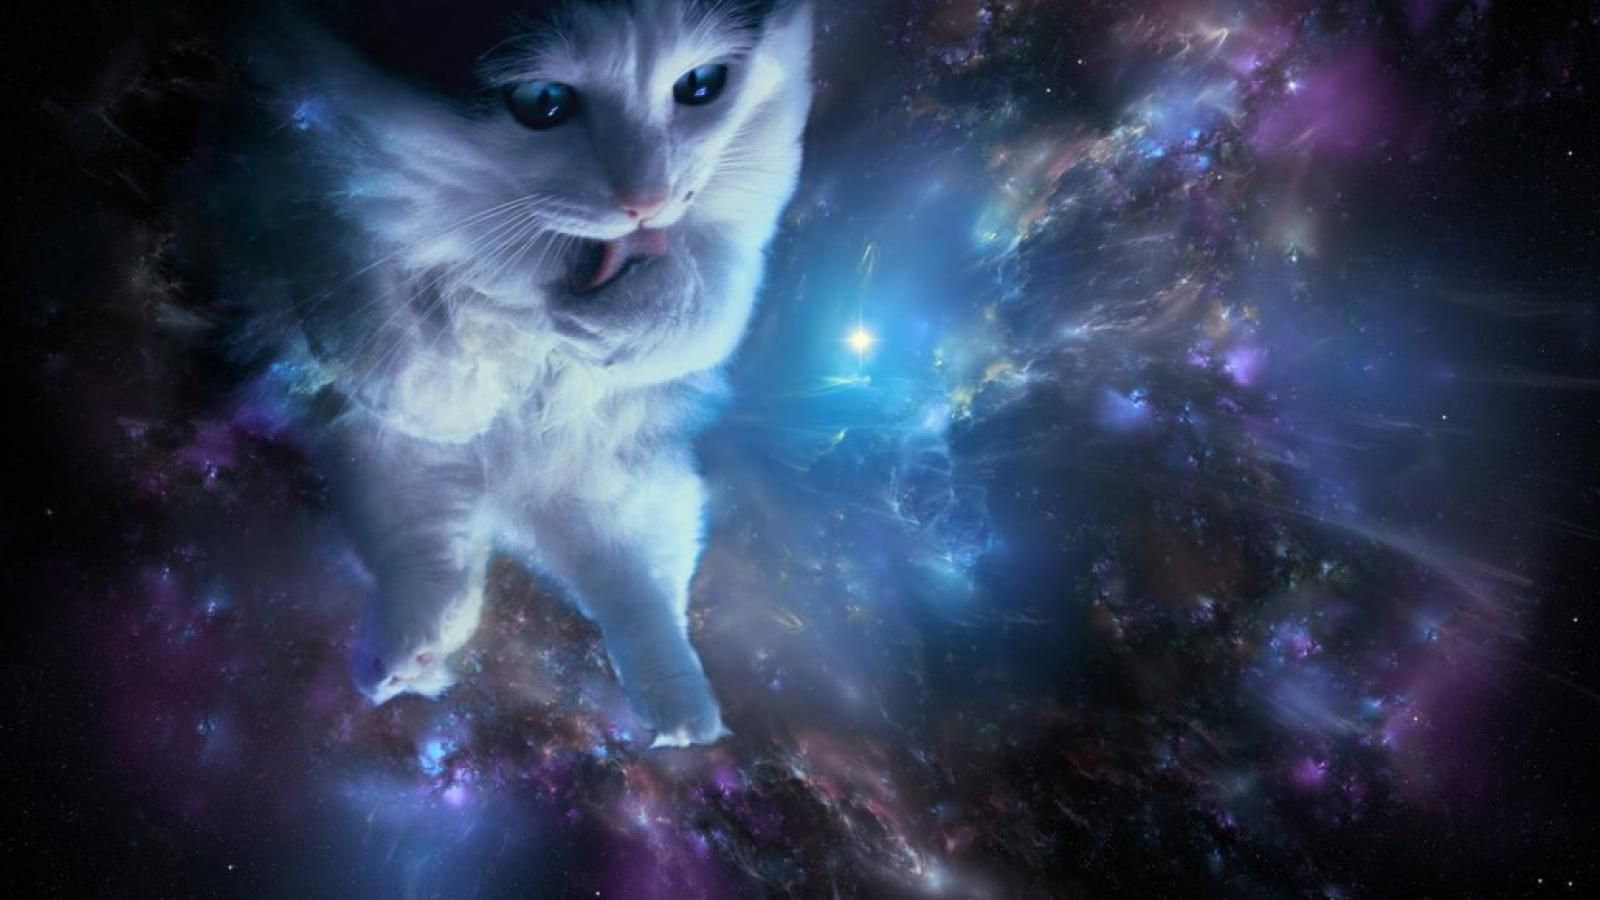 Cats In Space Wallpapers Top Free Cats In Space